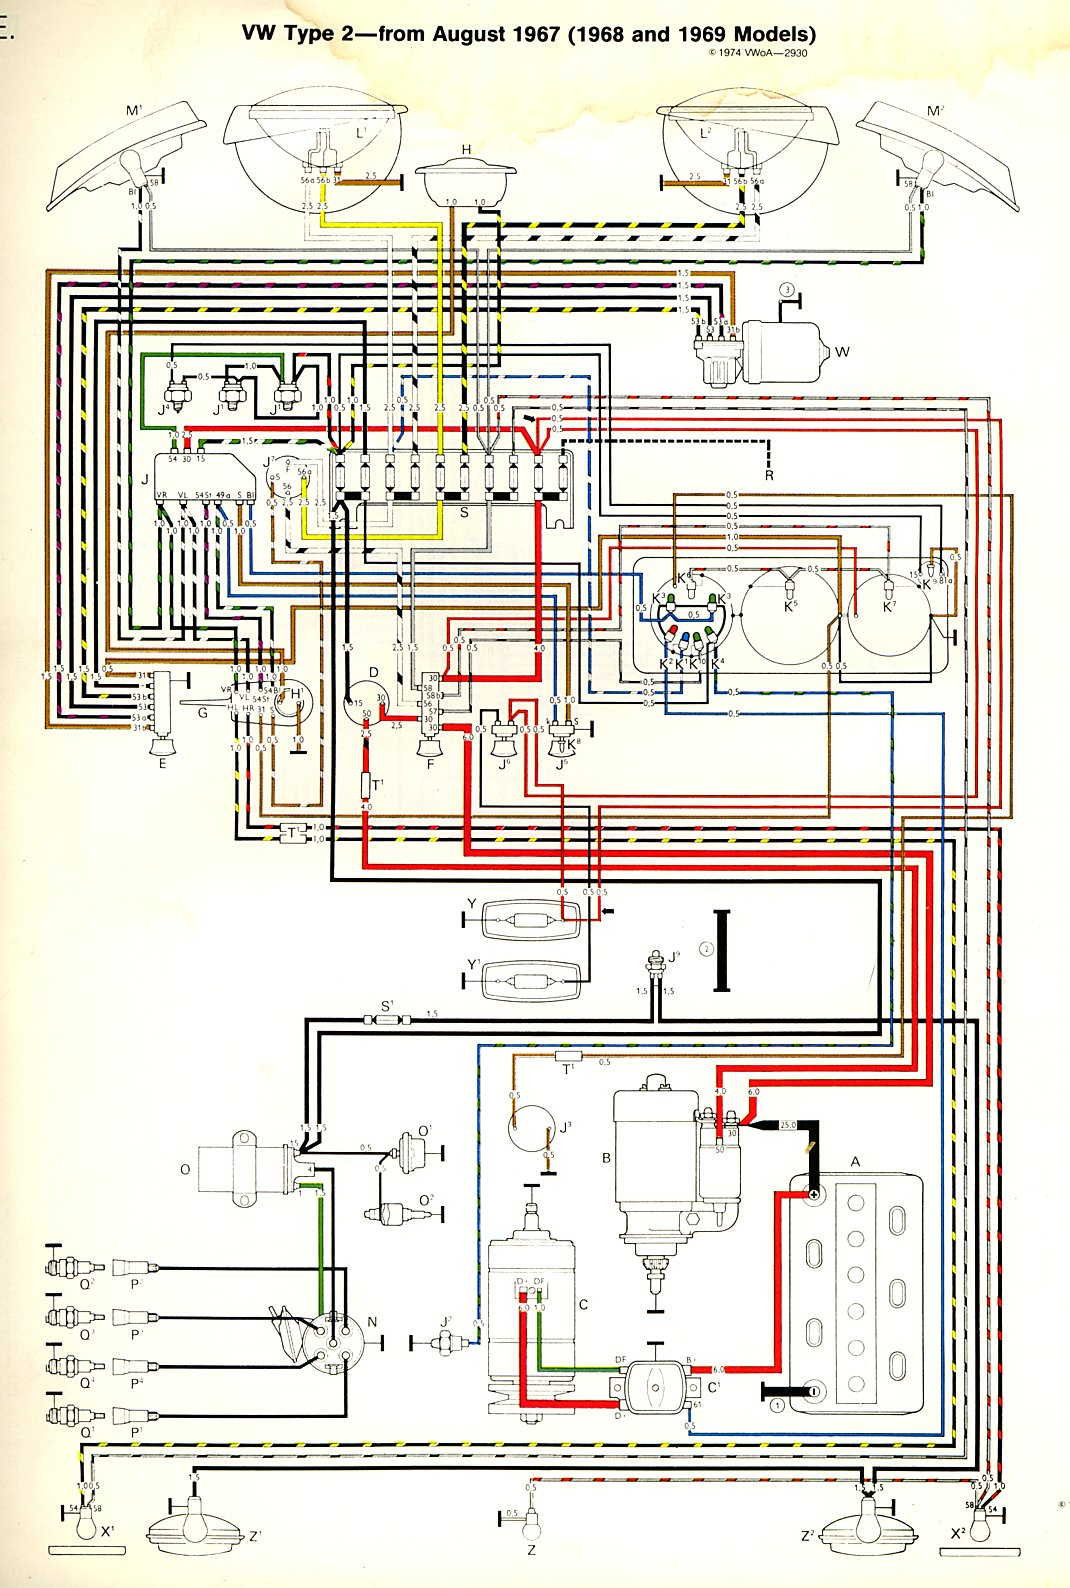 baybus_6869a 1972 beetle wiring diagram vw beetle wiring \u2022 free wiring diagrams 1974 Dodge Charger SE at crackthecode.co